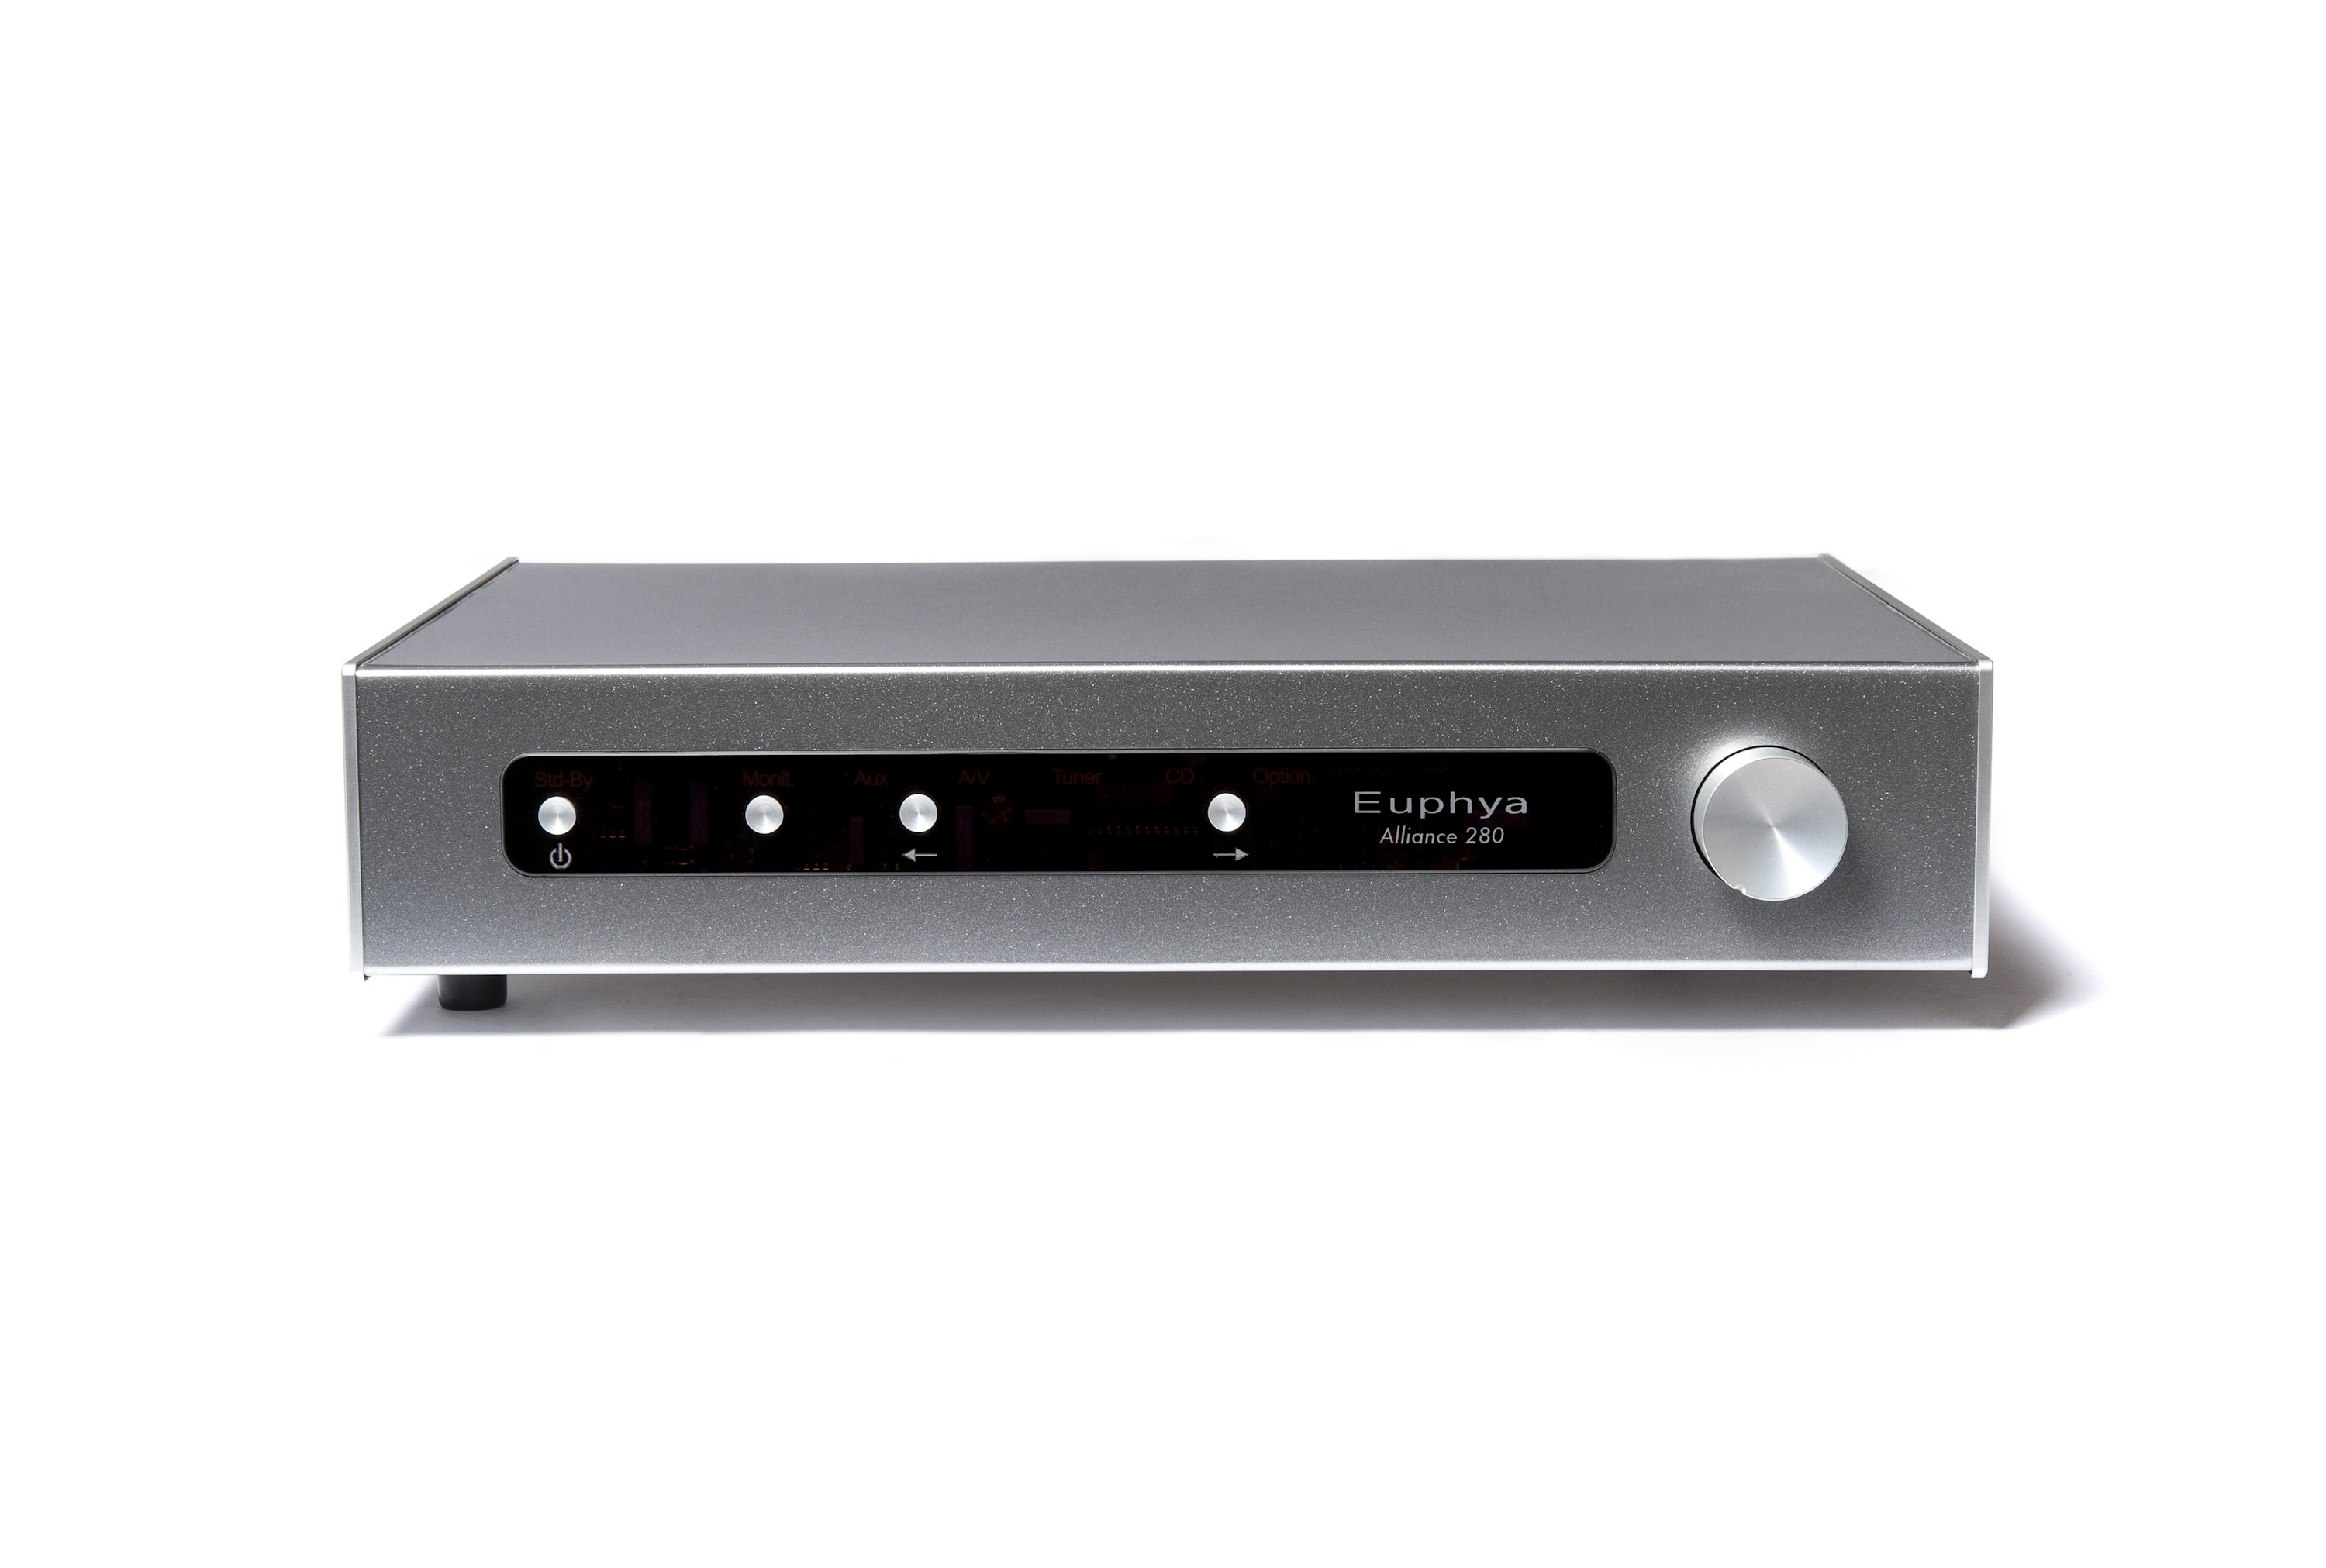 Ampli Euphya Alliance 280